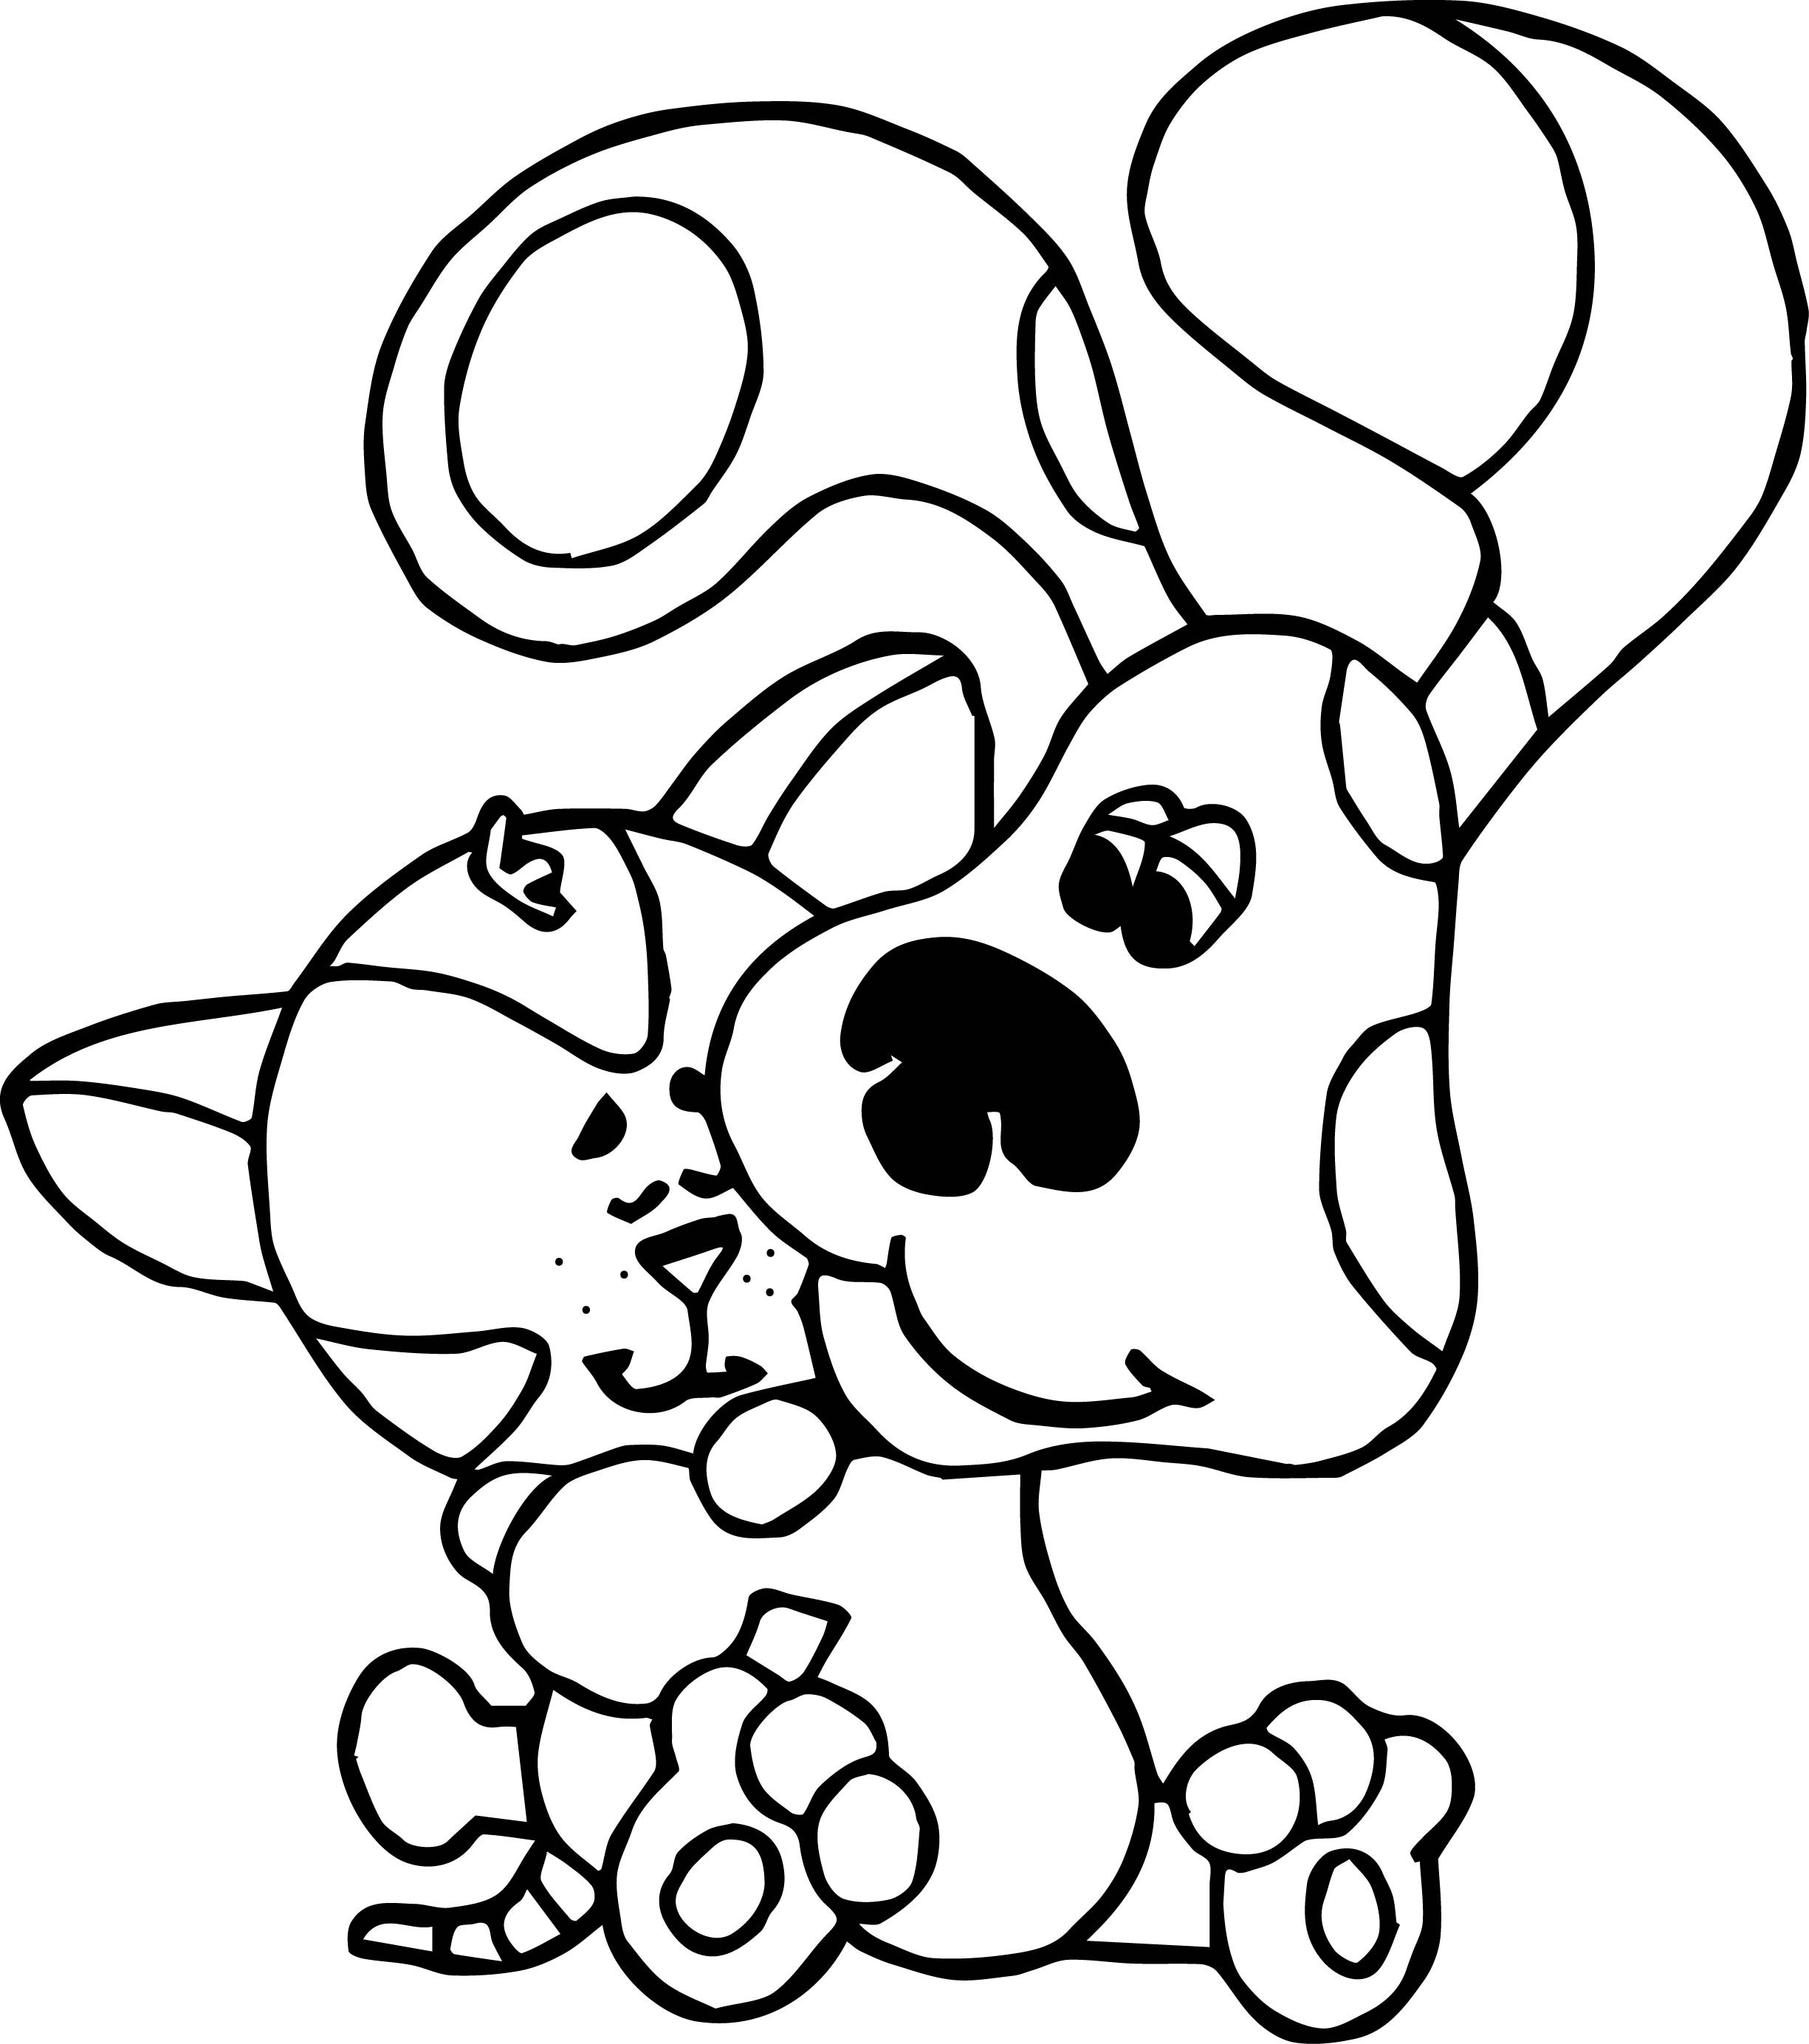 2450x2769 Dog Paw Print Coloring Page Free Draw To Color